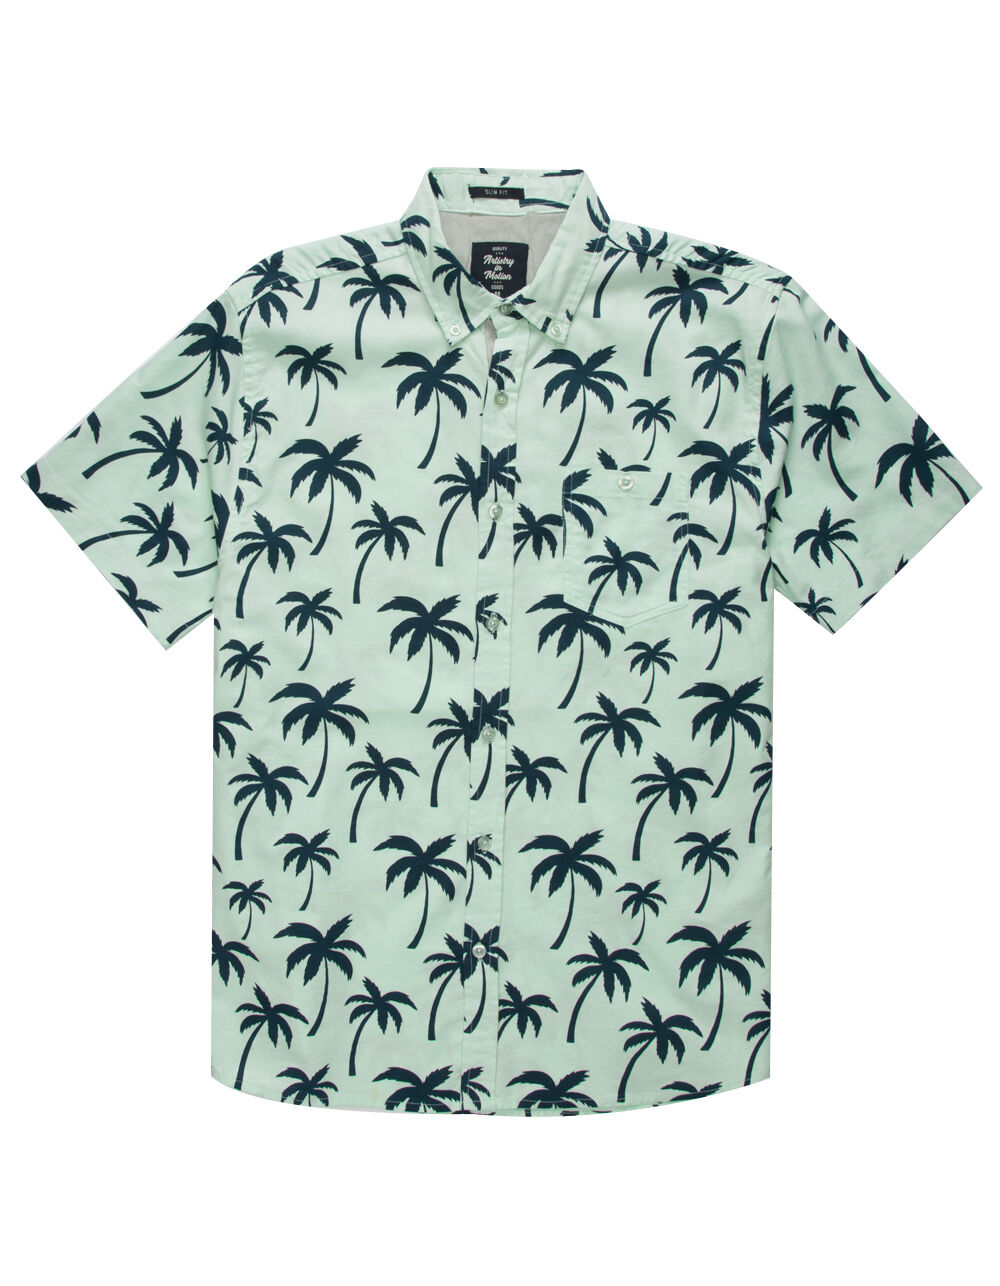 Image of ARTISTRY IN MOTION SOUTH BEACH SHIRT